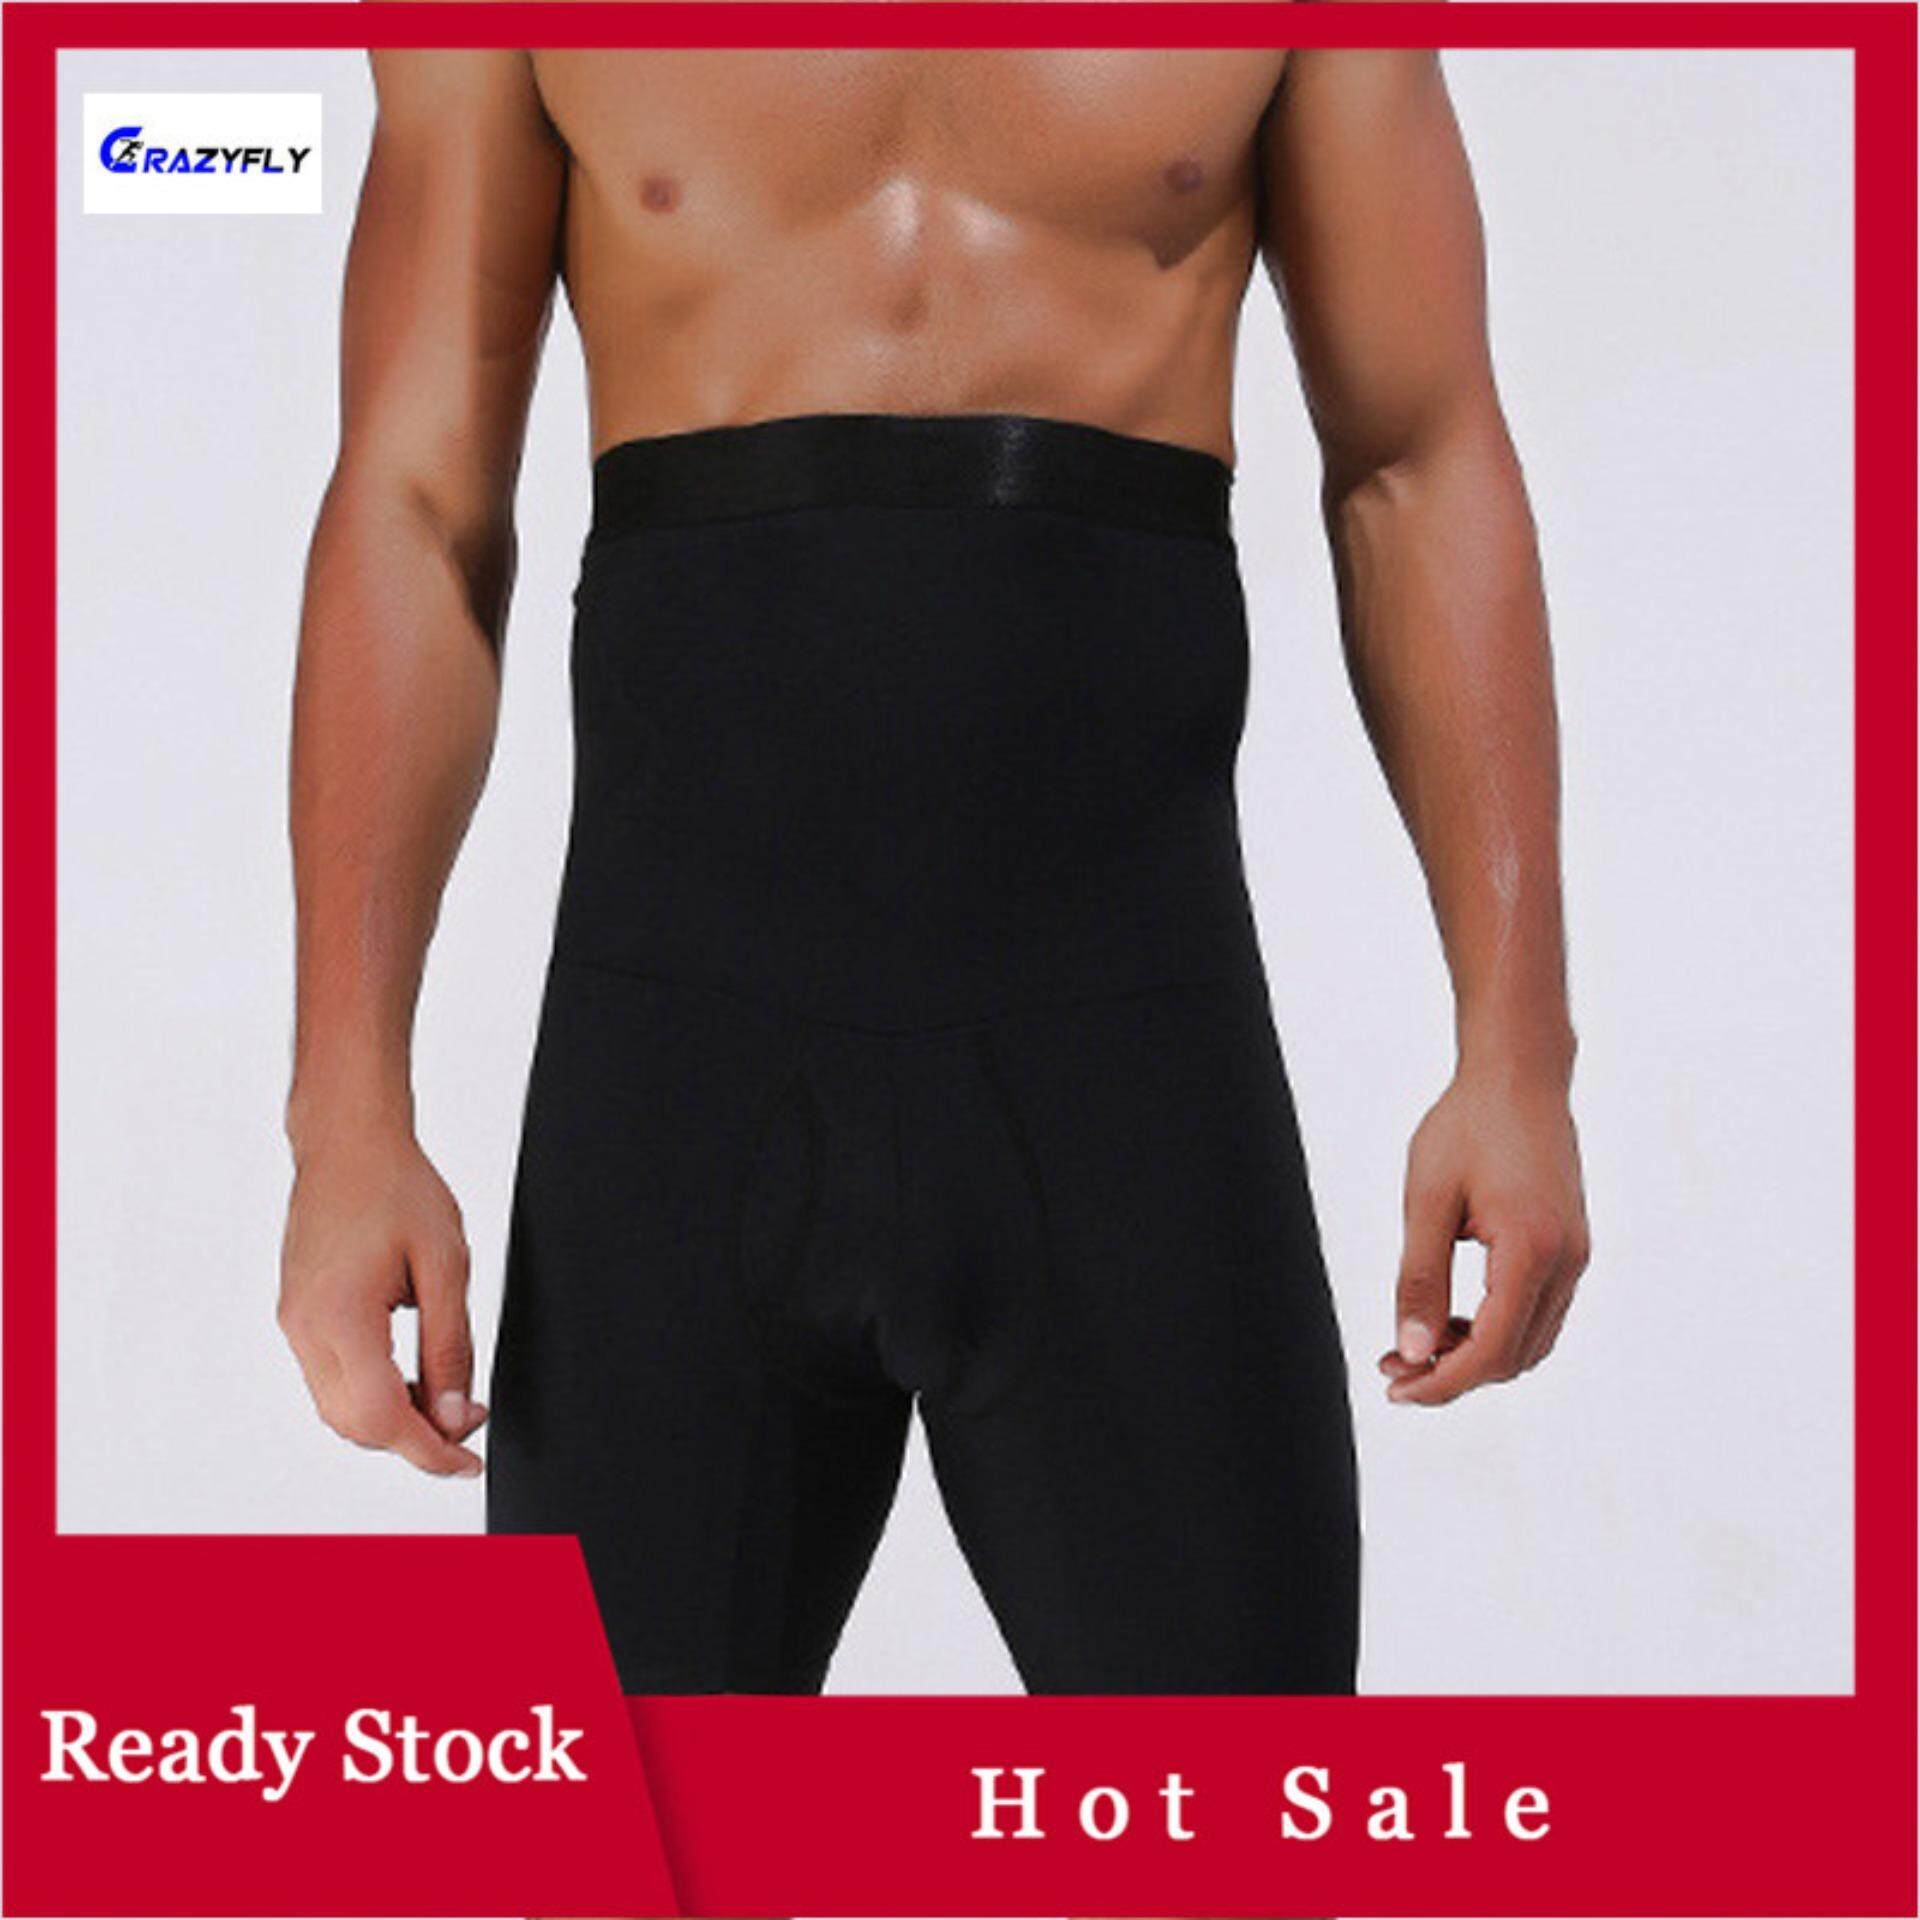 0a29003b68424 Men's Uniform Base Layers. 7082 items found in Compression. Crazyfly Men  Ultra Lift Slimming Body Shaper Tummy Boxer High Waist Brief Panties